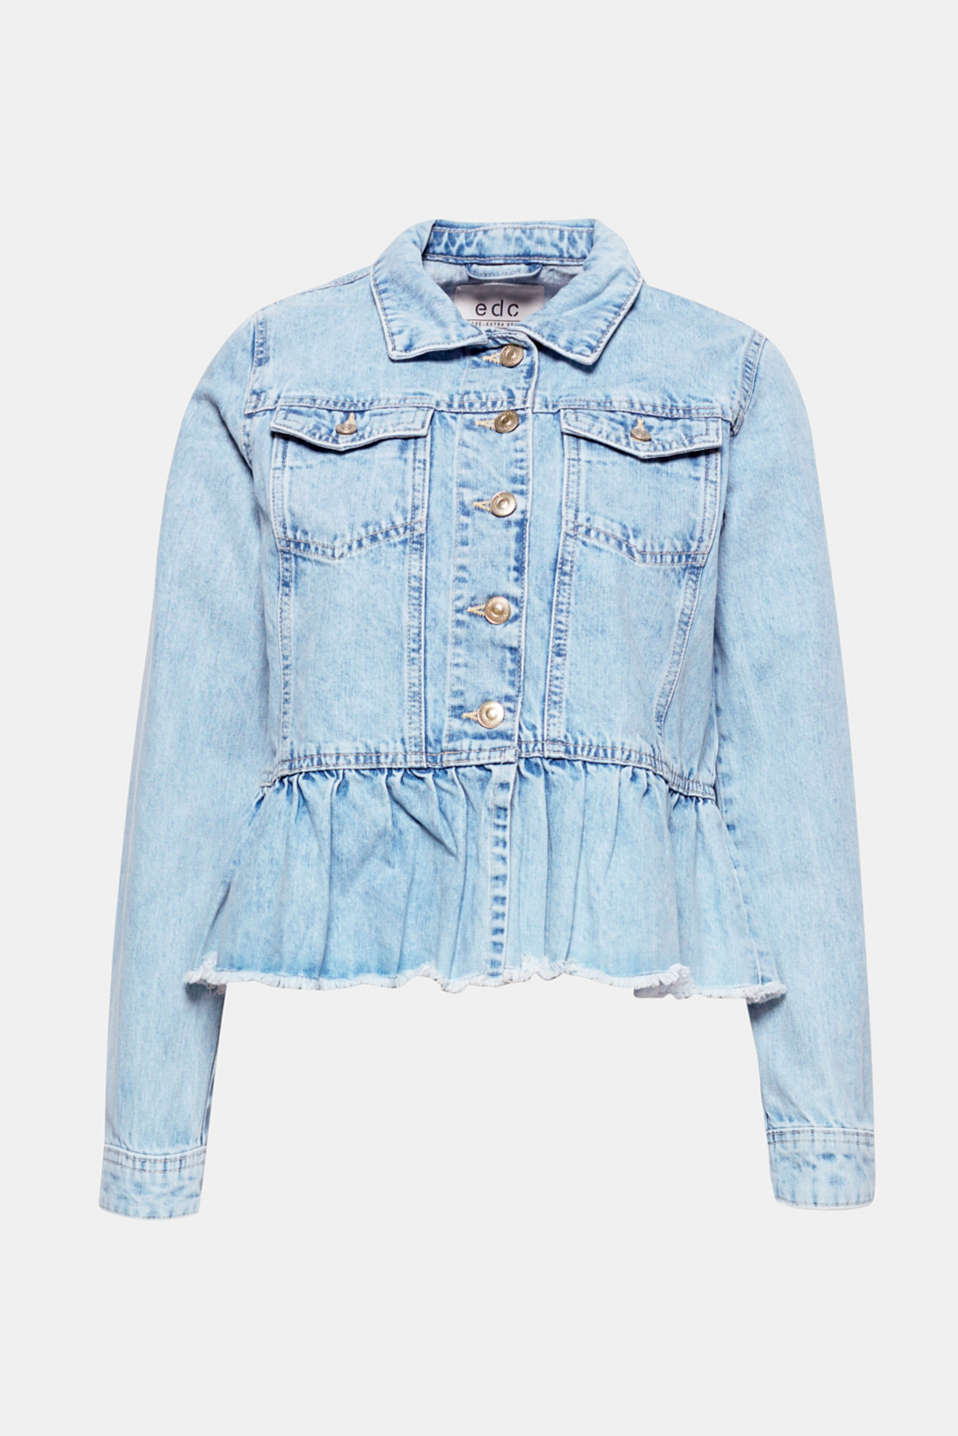 Casual, pretty and unique: this trendy denim jacket is sure to catch the eye thanks to the pretty frilled hem.